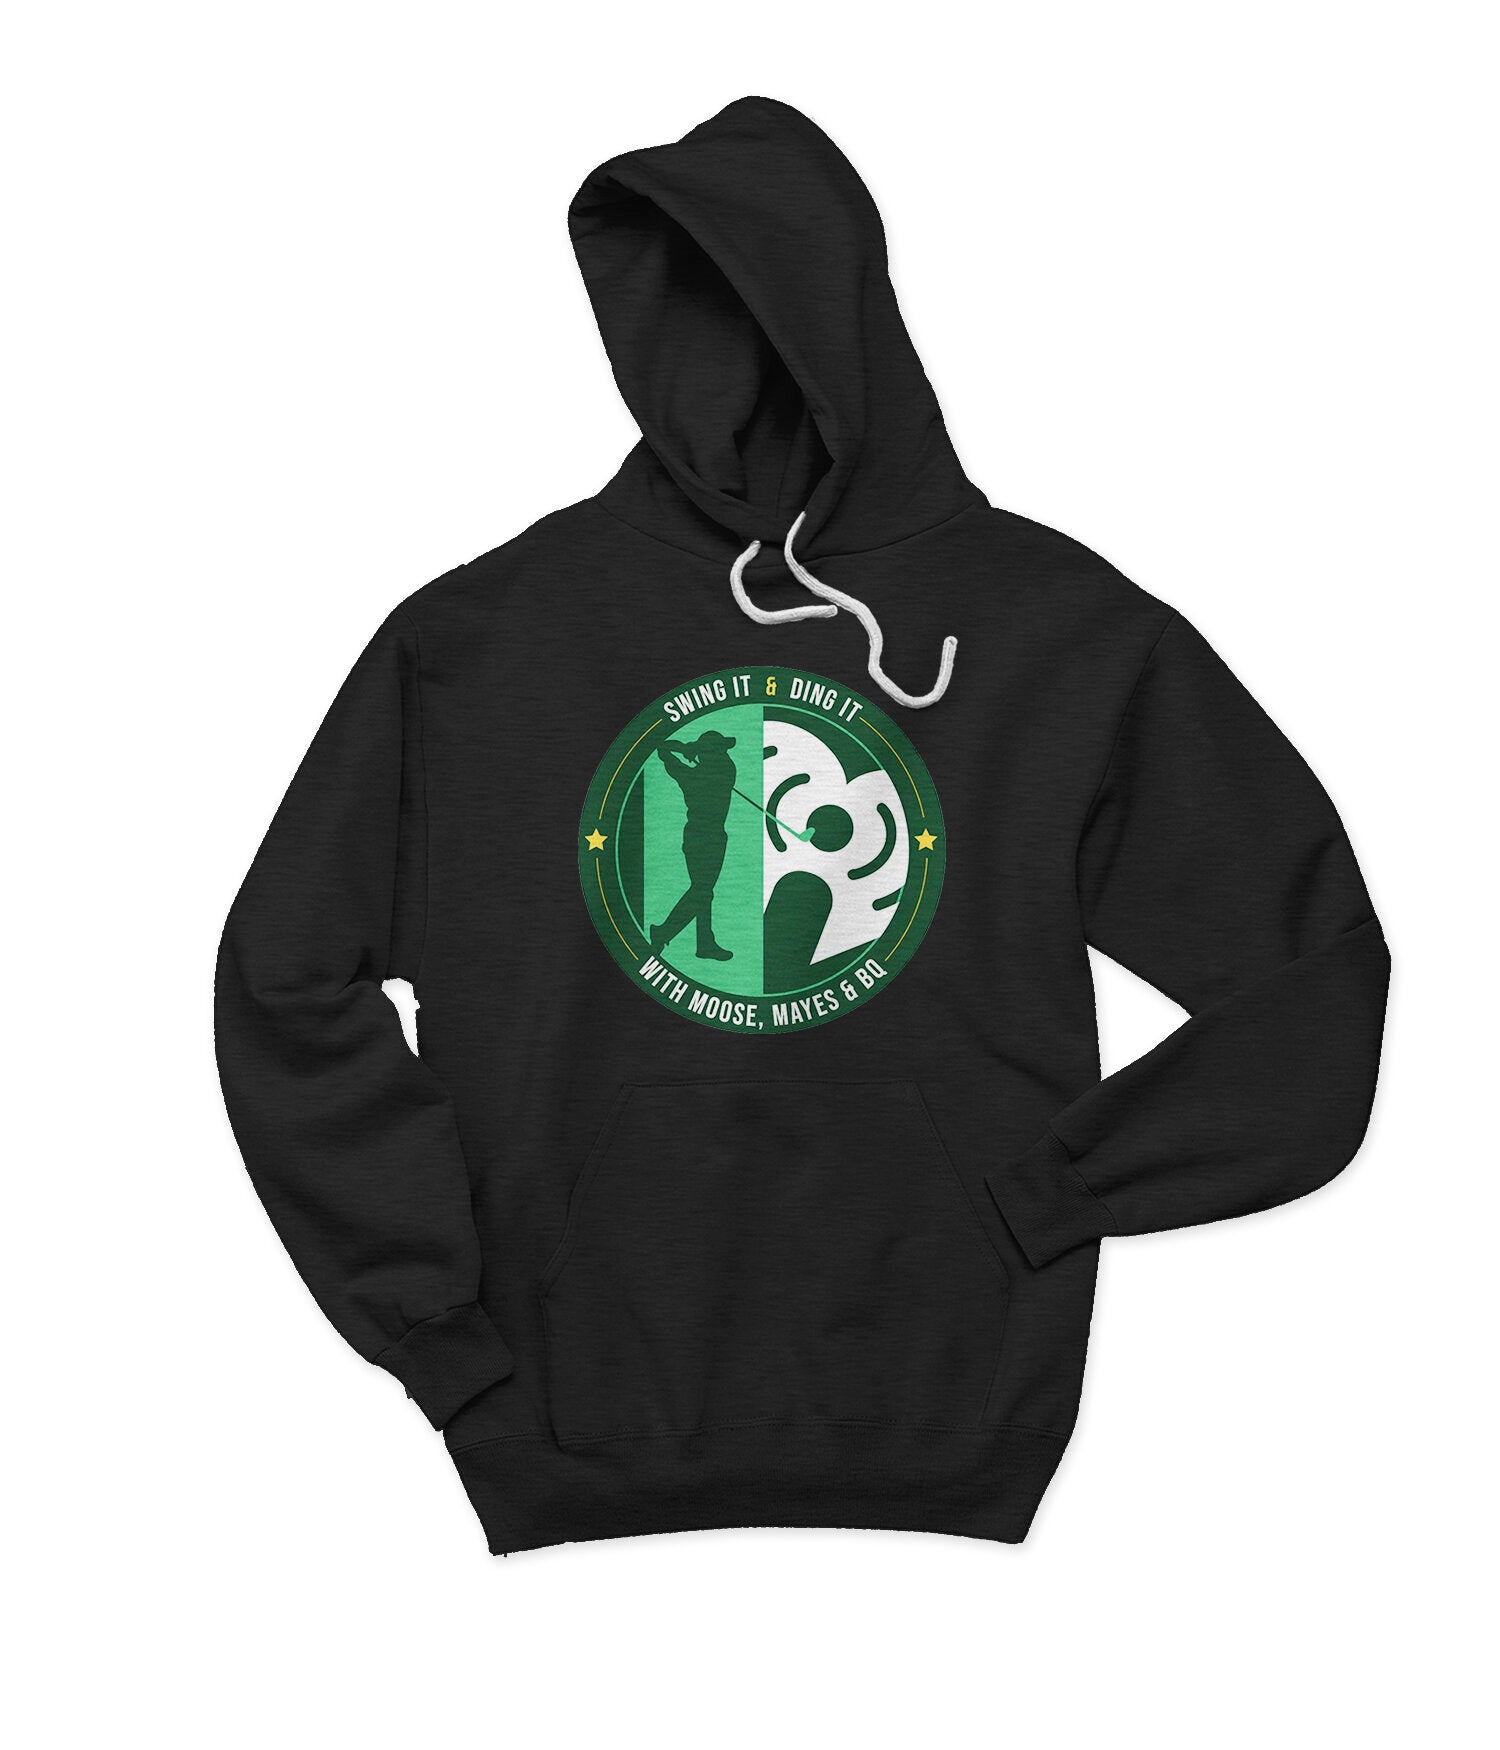 Swing It And Ding It Hoodie